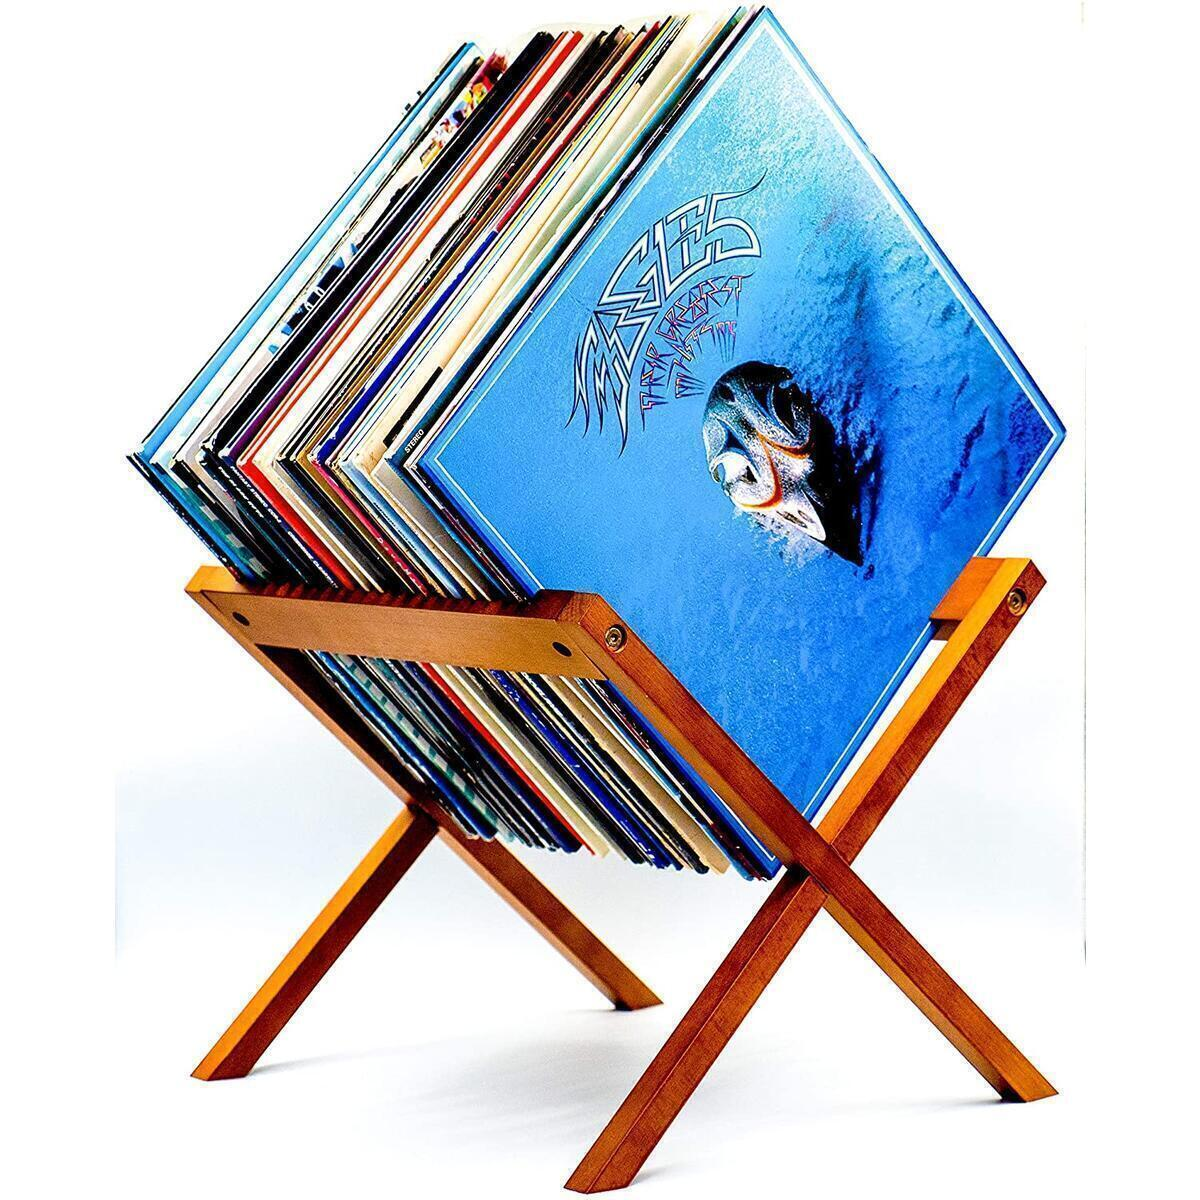 the hhc vinyl record holder single and double vinyl storage modern wooden record display rack for 12 x12 albums vinyl record storage stand lp